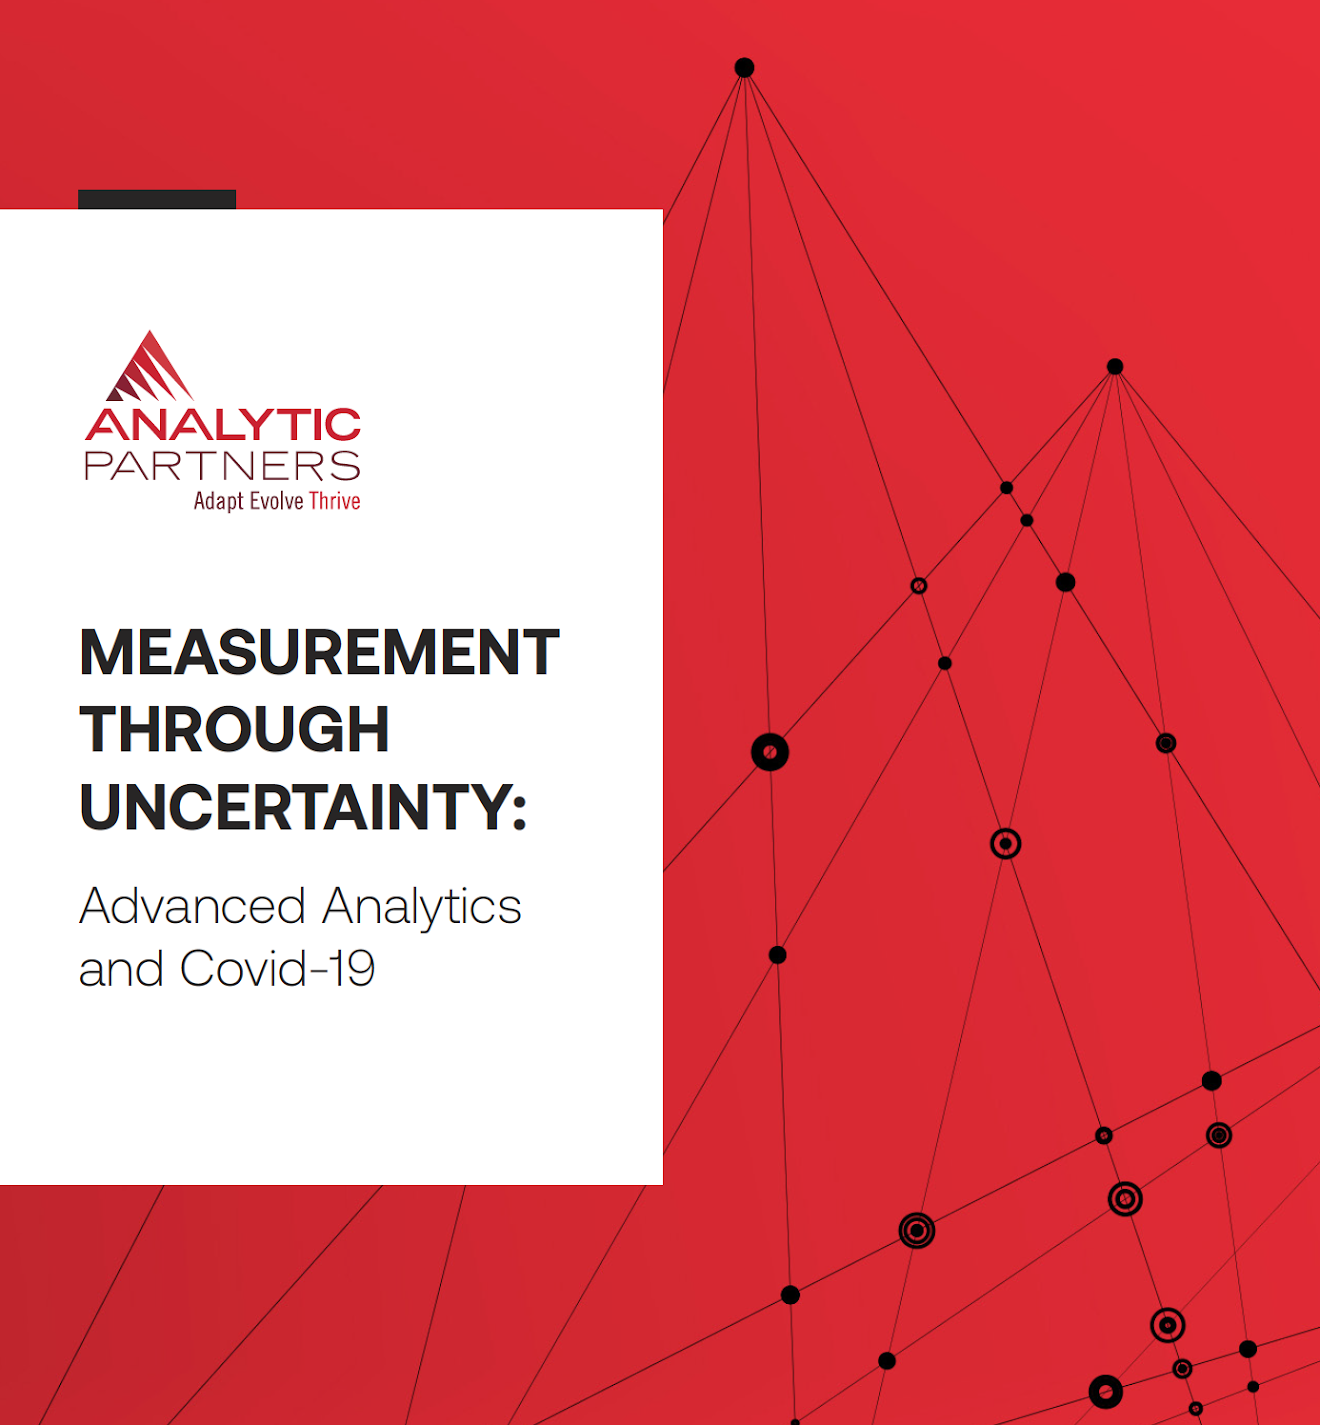 Advanced Analytics for Marketing Measurement Through Uncertainty during COVID-19